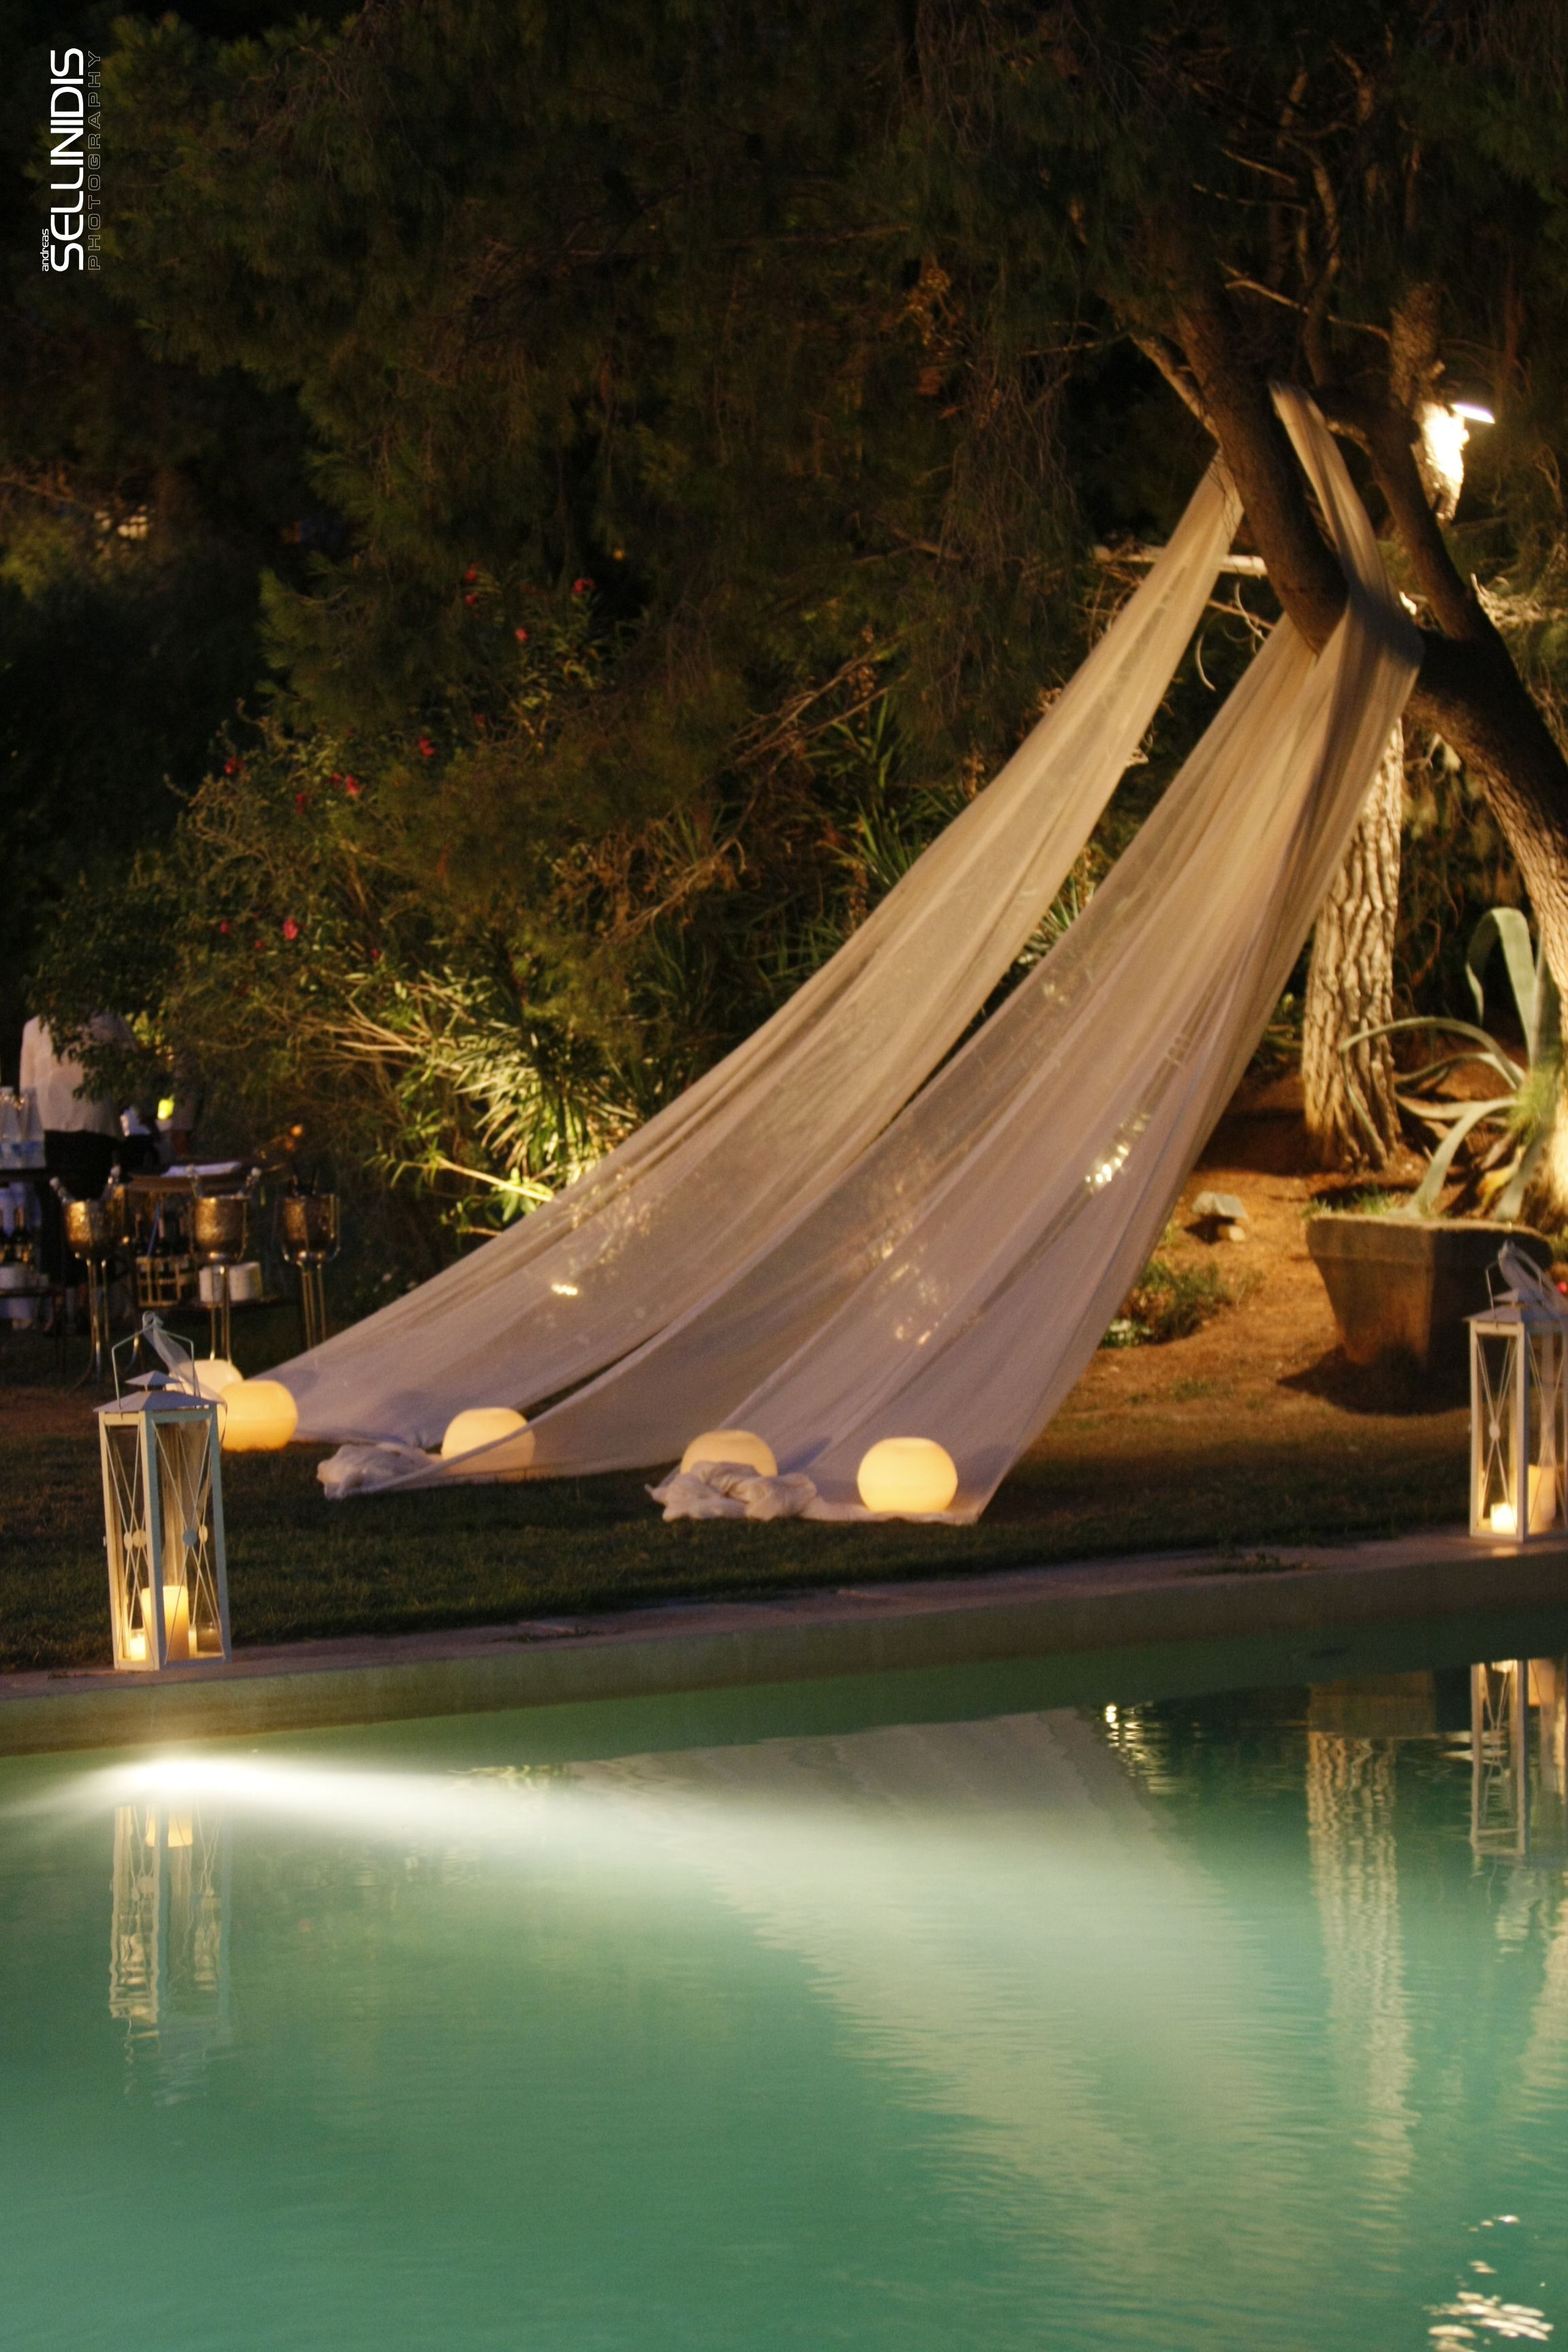 5 Steps To A Perfectly Planned Pool Party | Backyards, Wedding and 14